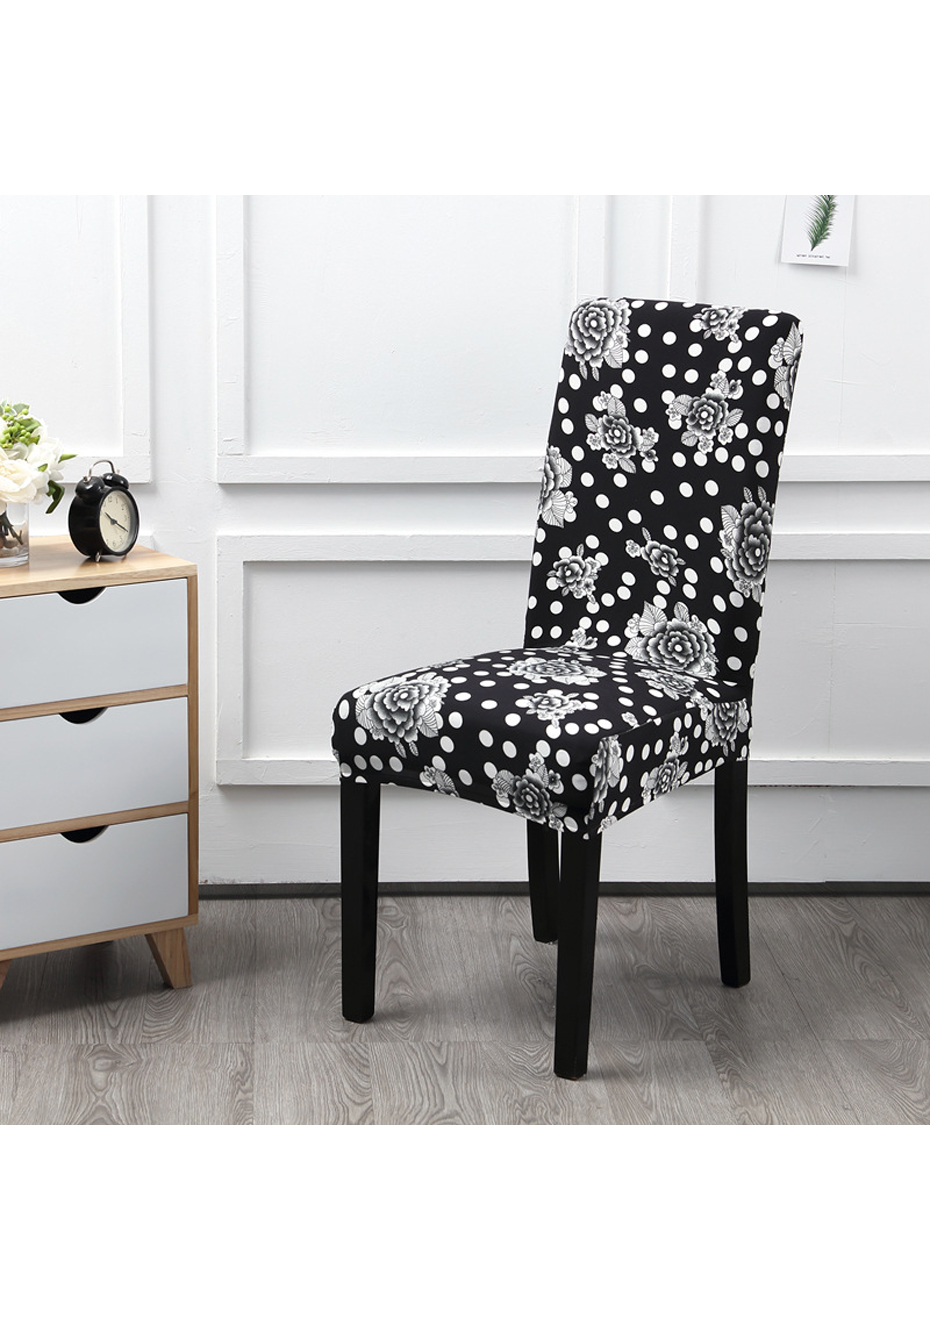 Dining Chair Slipcover Dining Chair Slipcovers Set Of 4 Black Flowers